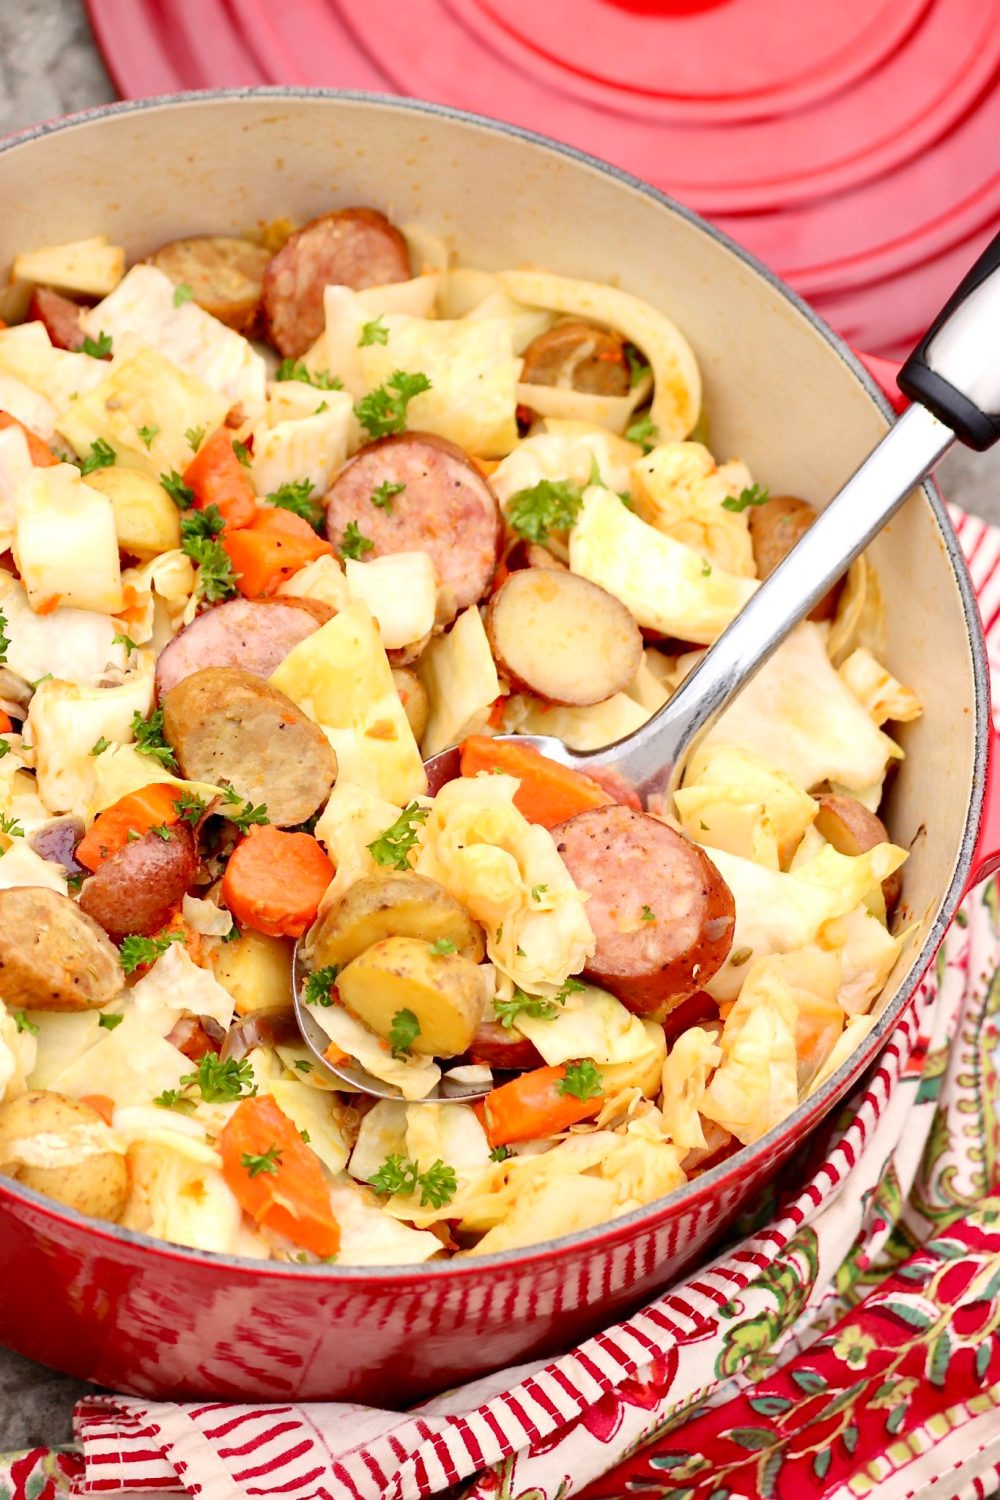 Smoky sausage, creamy potatoes, sweet cabbage and carrots are simmered in a simply seasoned broth for a one-pot meal that's deliciously easy and wholesomely satisfying.